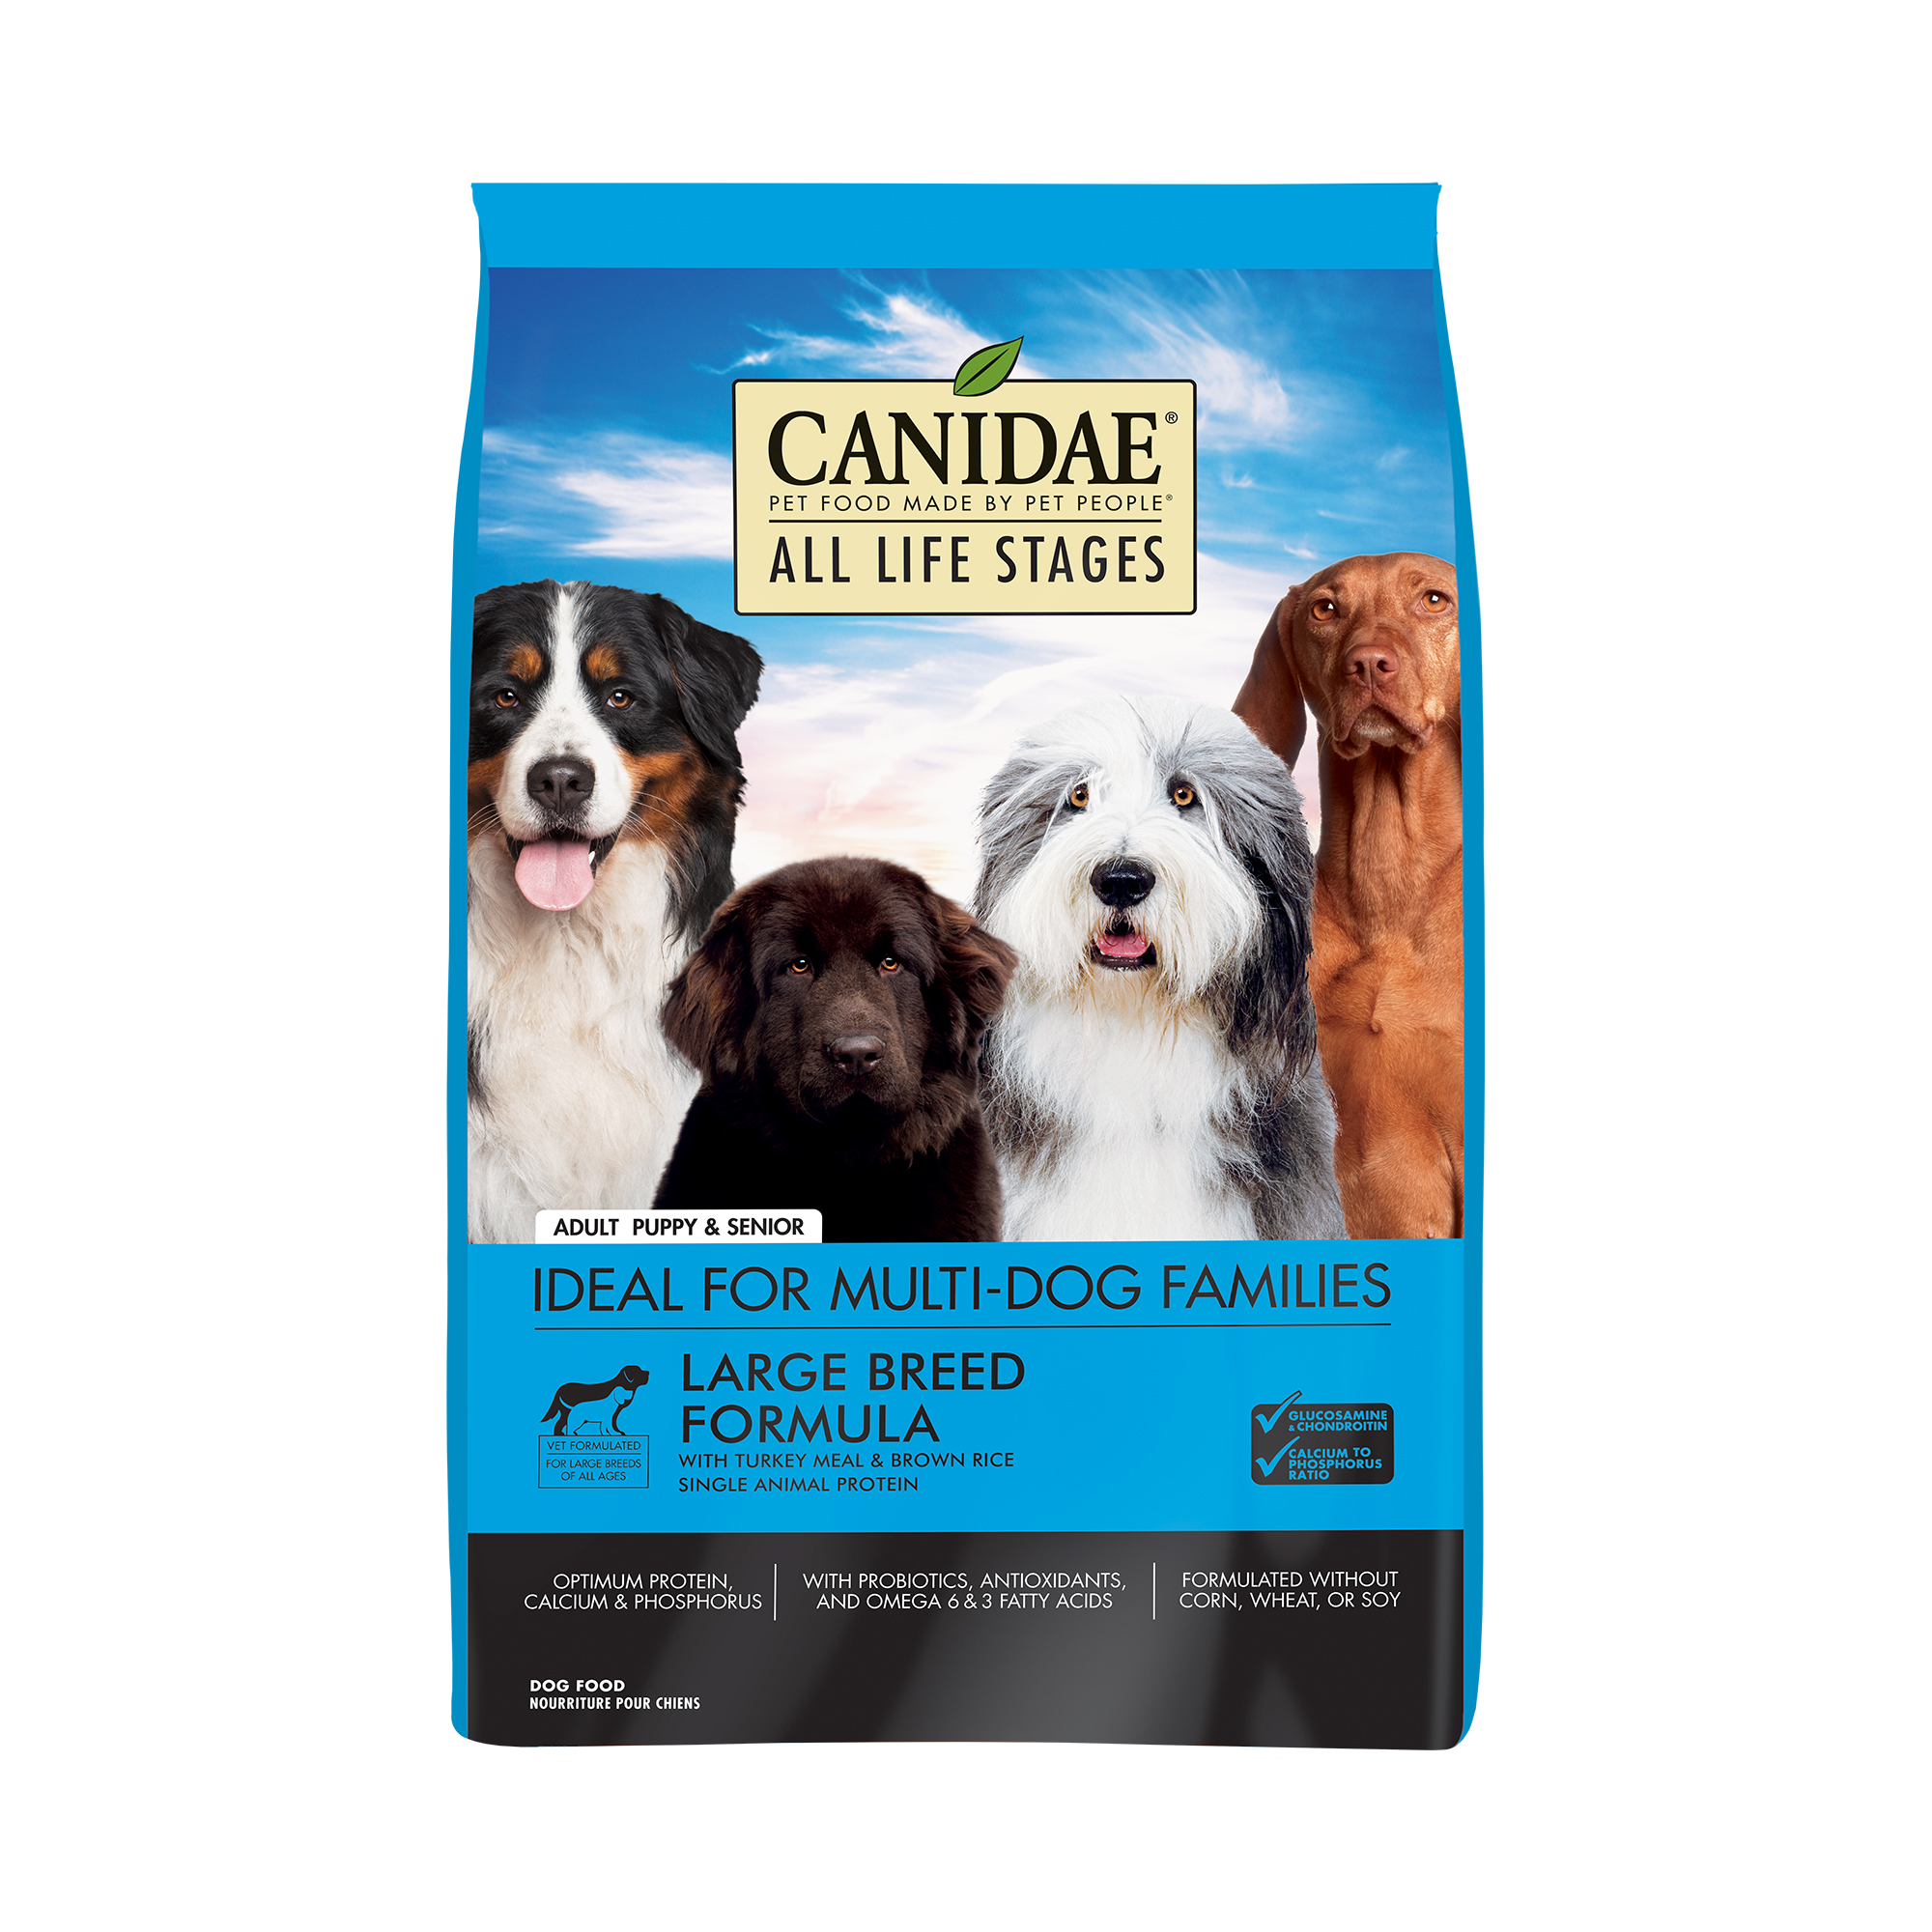 Canidae All Life Stages Turkey Meal & Brown Rice Formula Large Breed Dry Dog Food, 30-lb bag